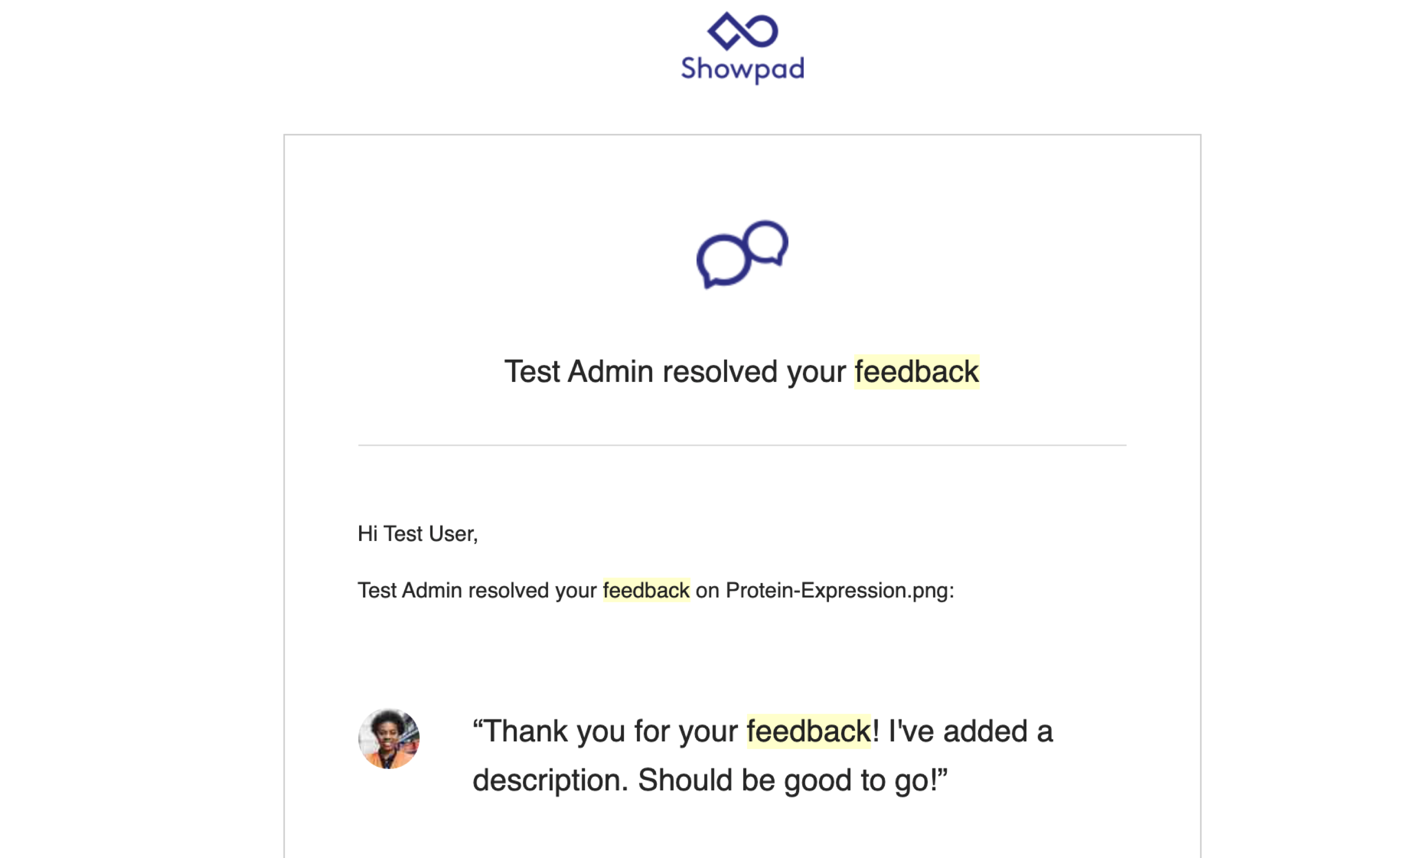 Feedback_Resolved_to_User.png